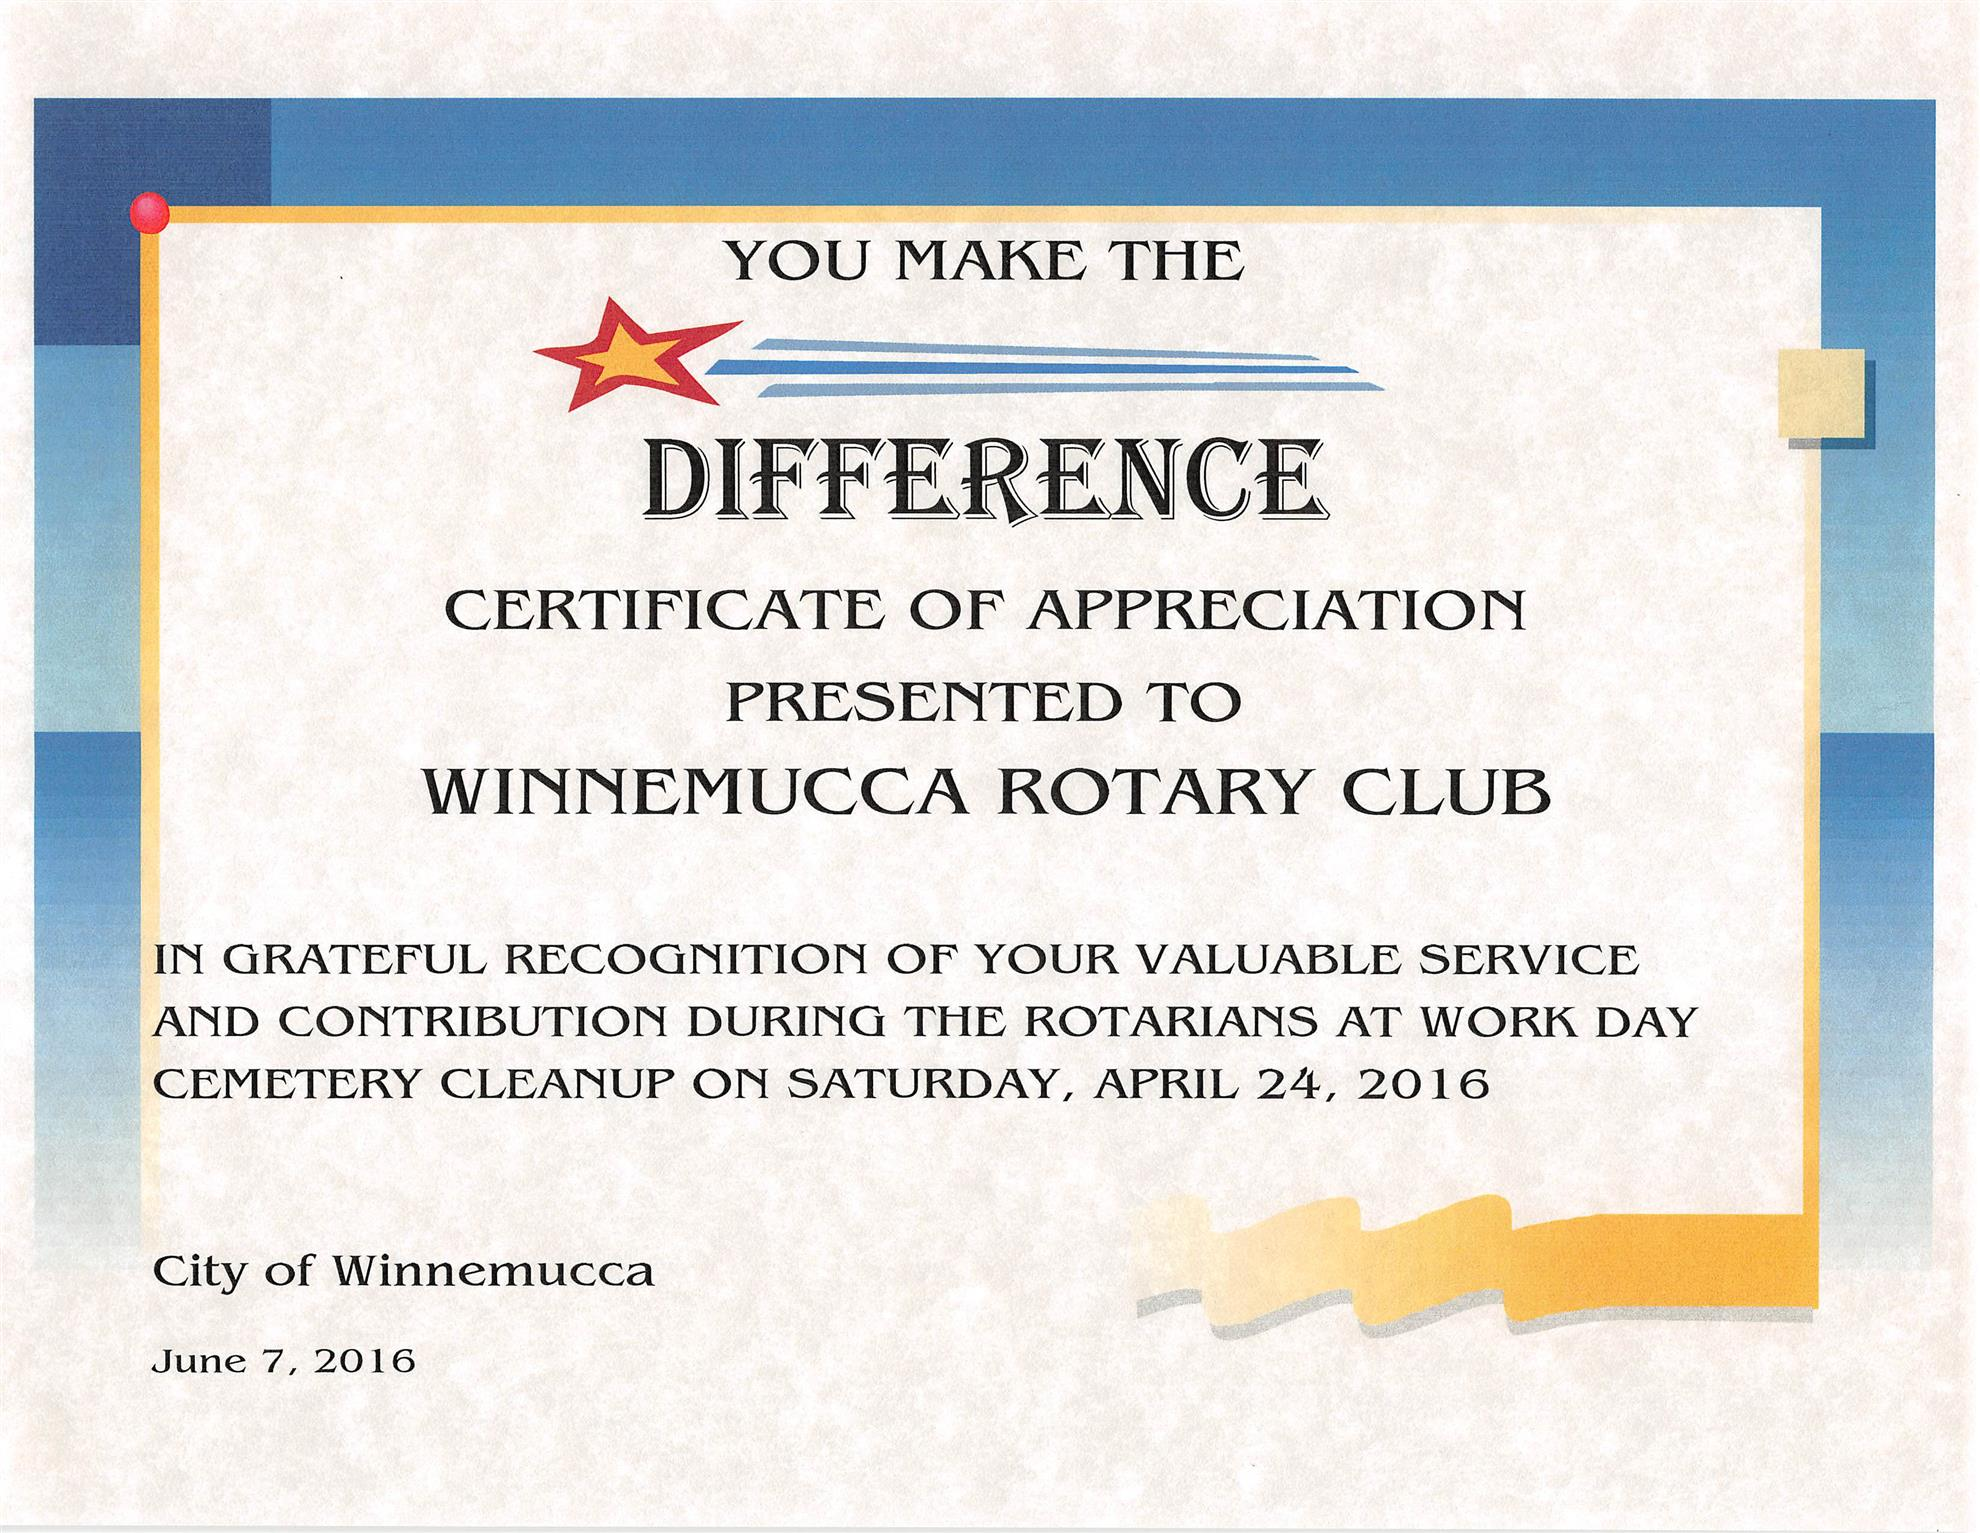 Home page rotary club of winnemucca for Rotary certificate of appreciation template